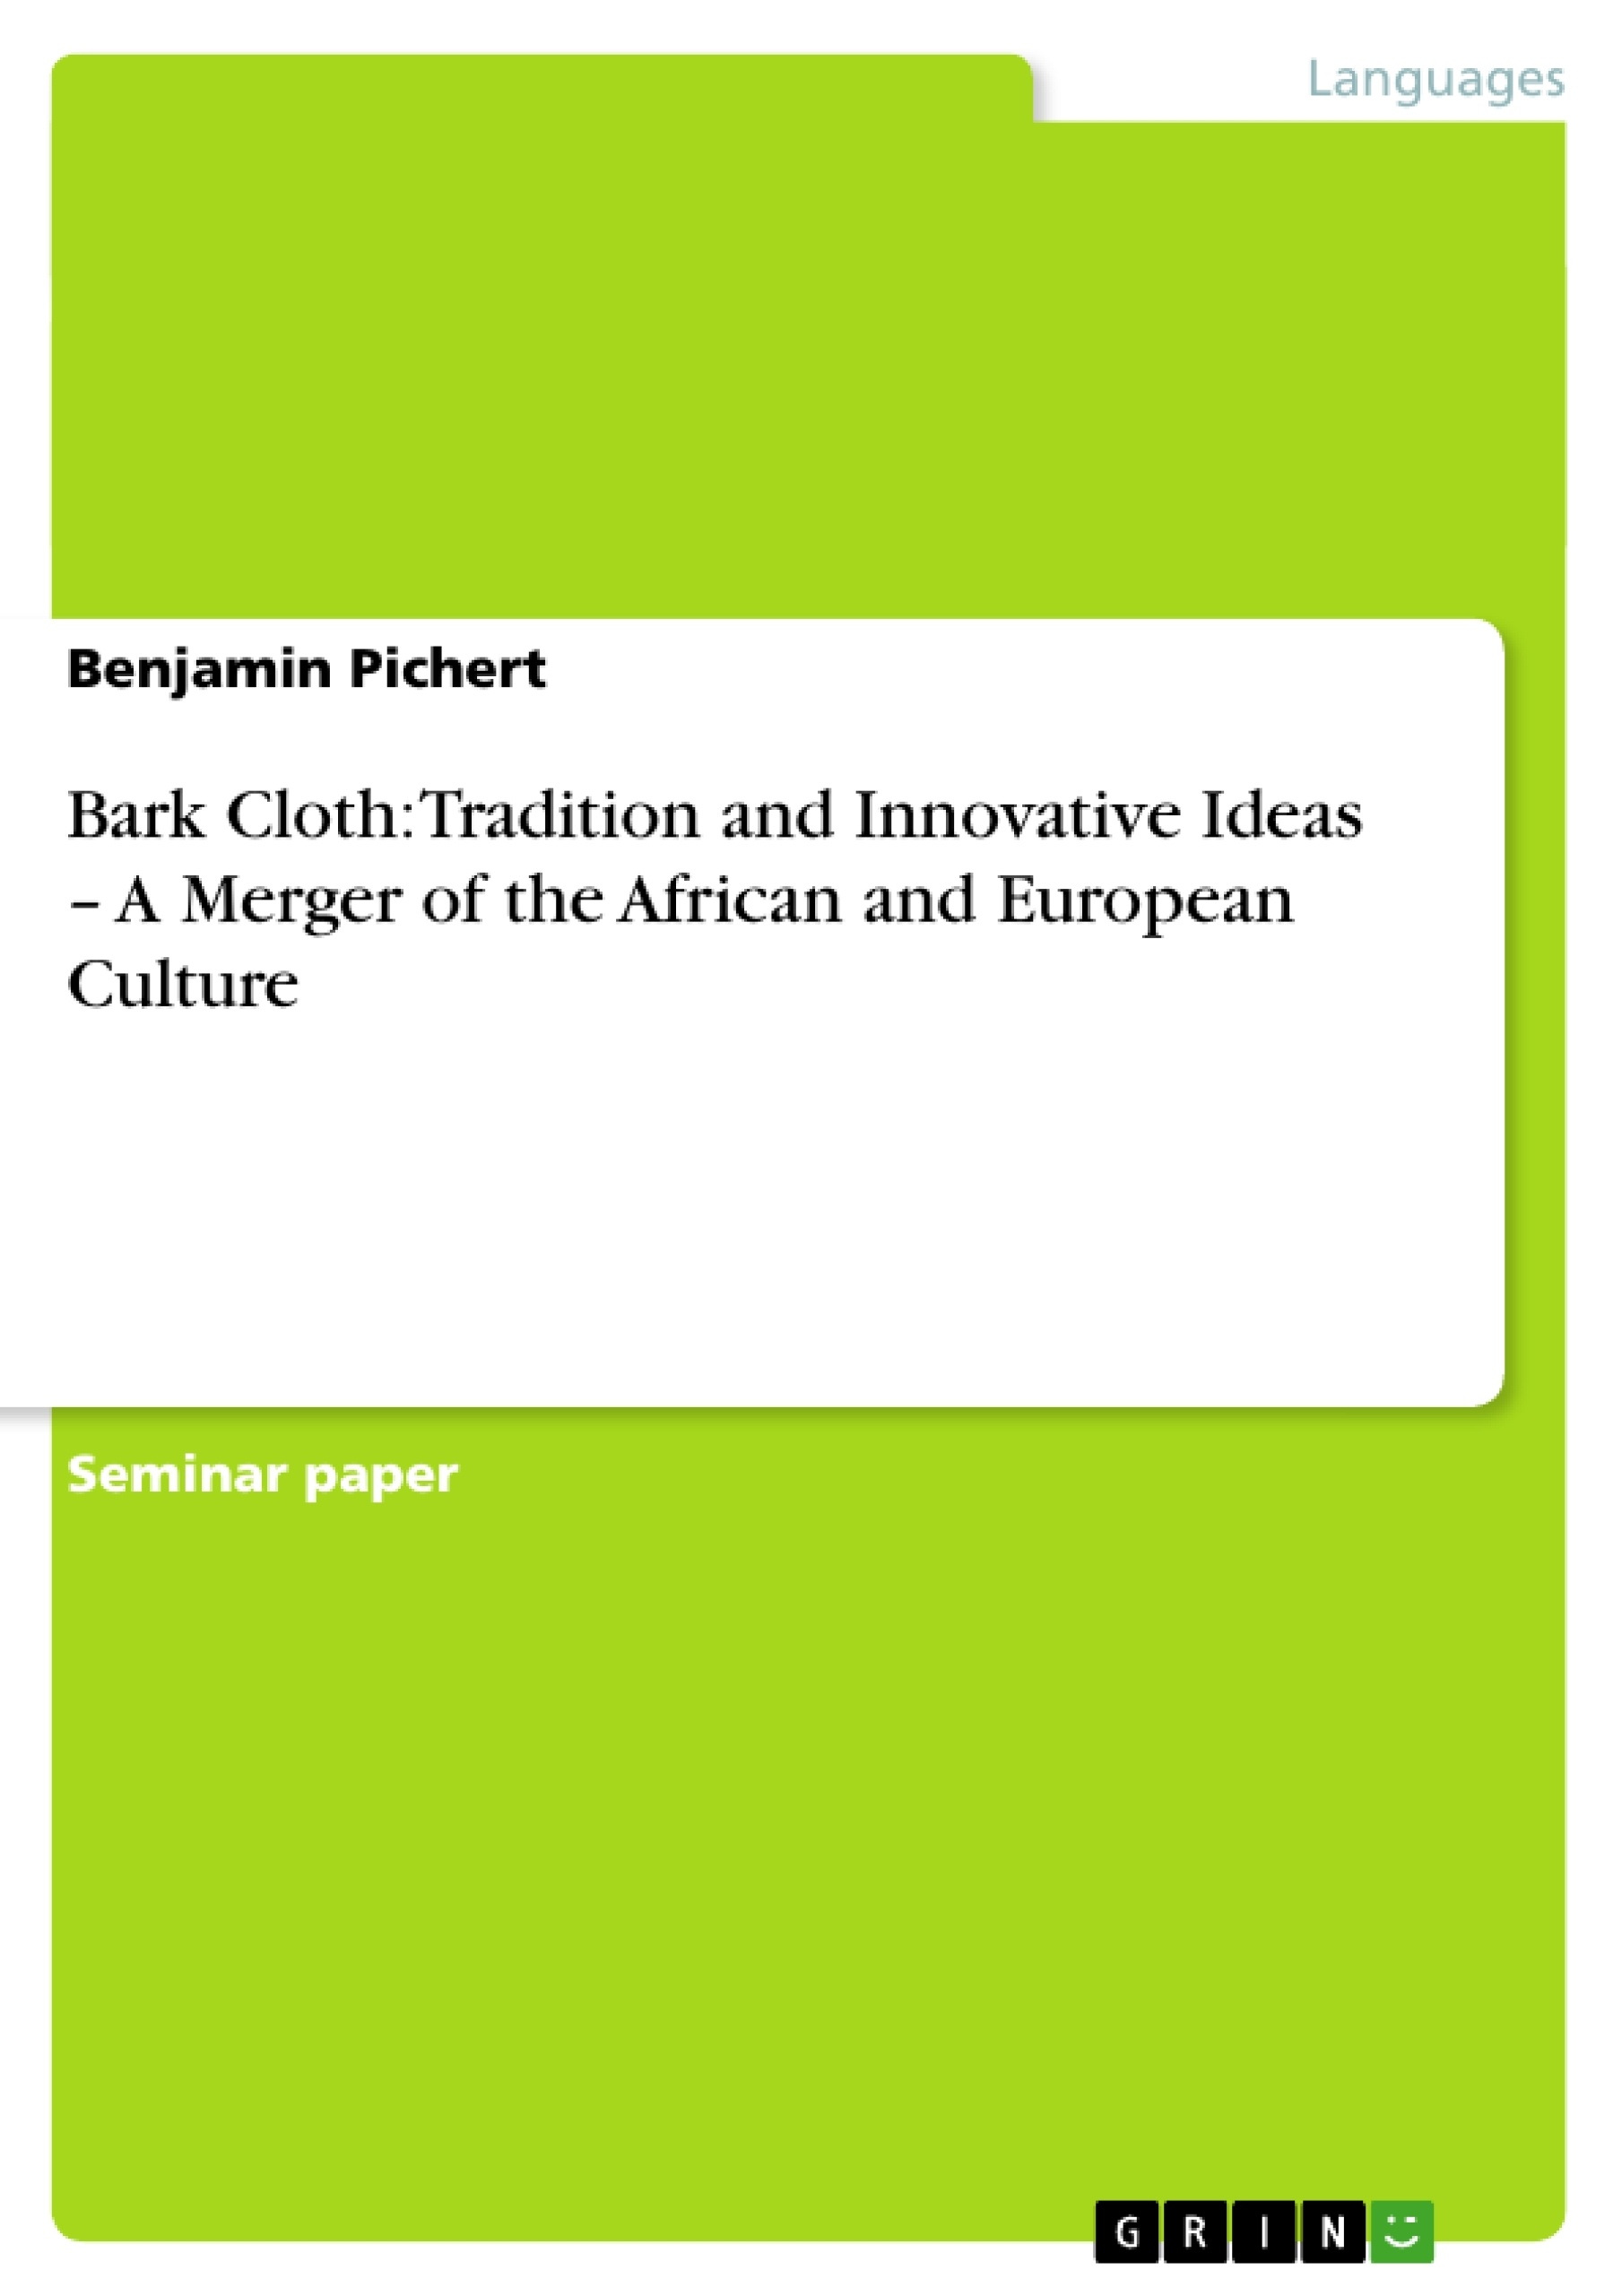 Title: Bark Cloth: Tradition and Innovative Ideas – A Merger of the African and European Culture